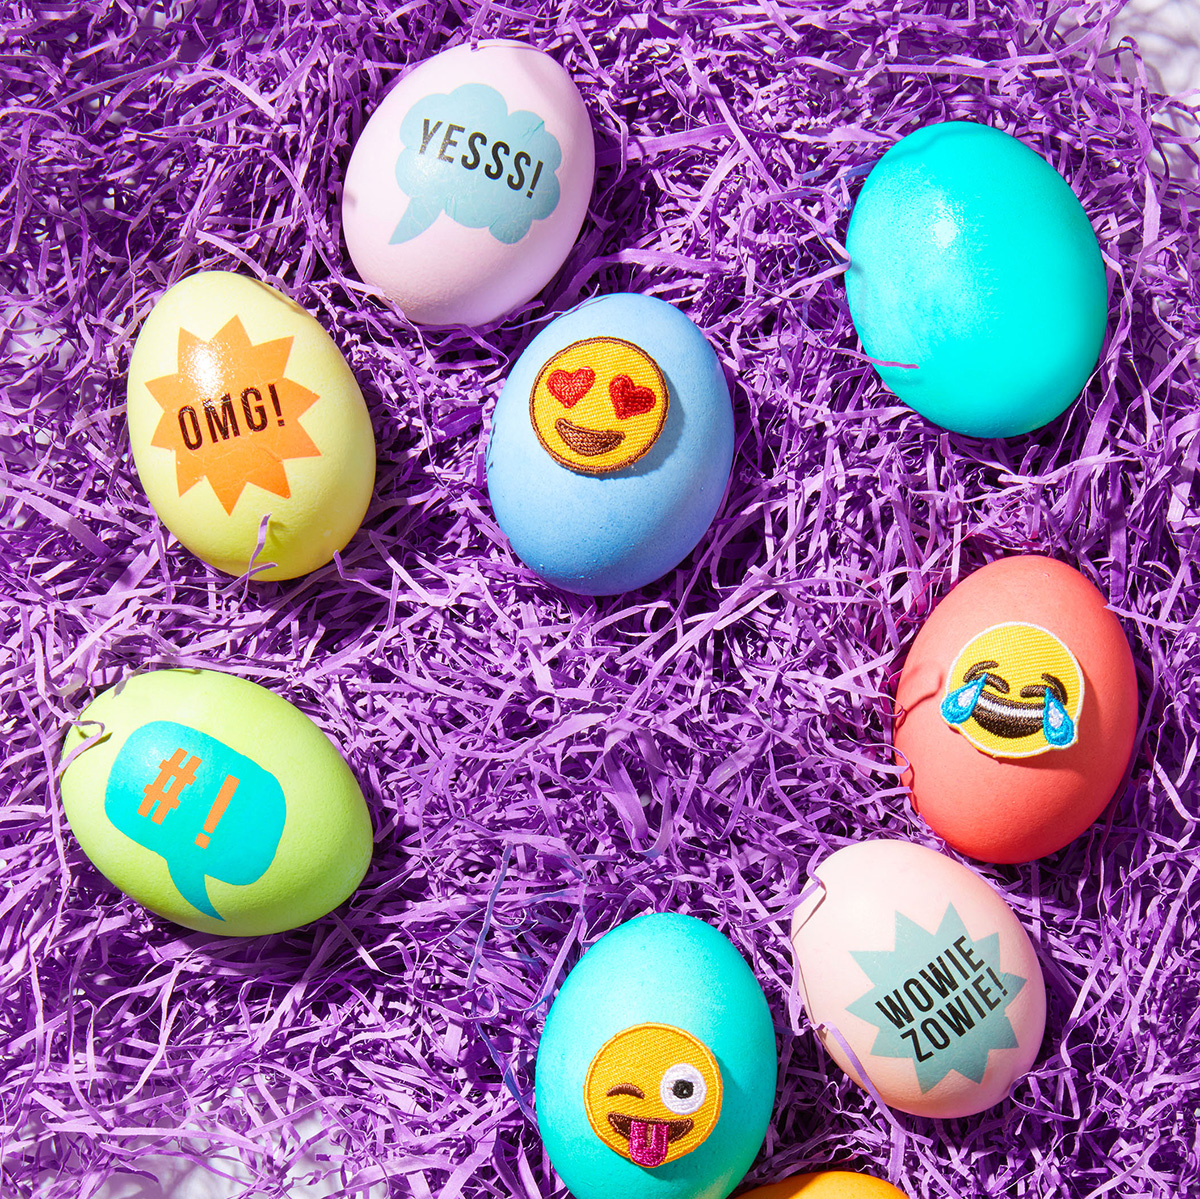 temporary tattoos emoji patches easter egg decorations